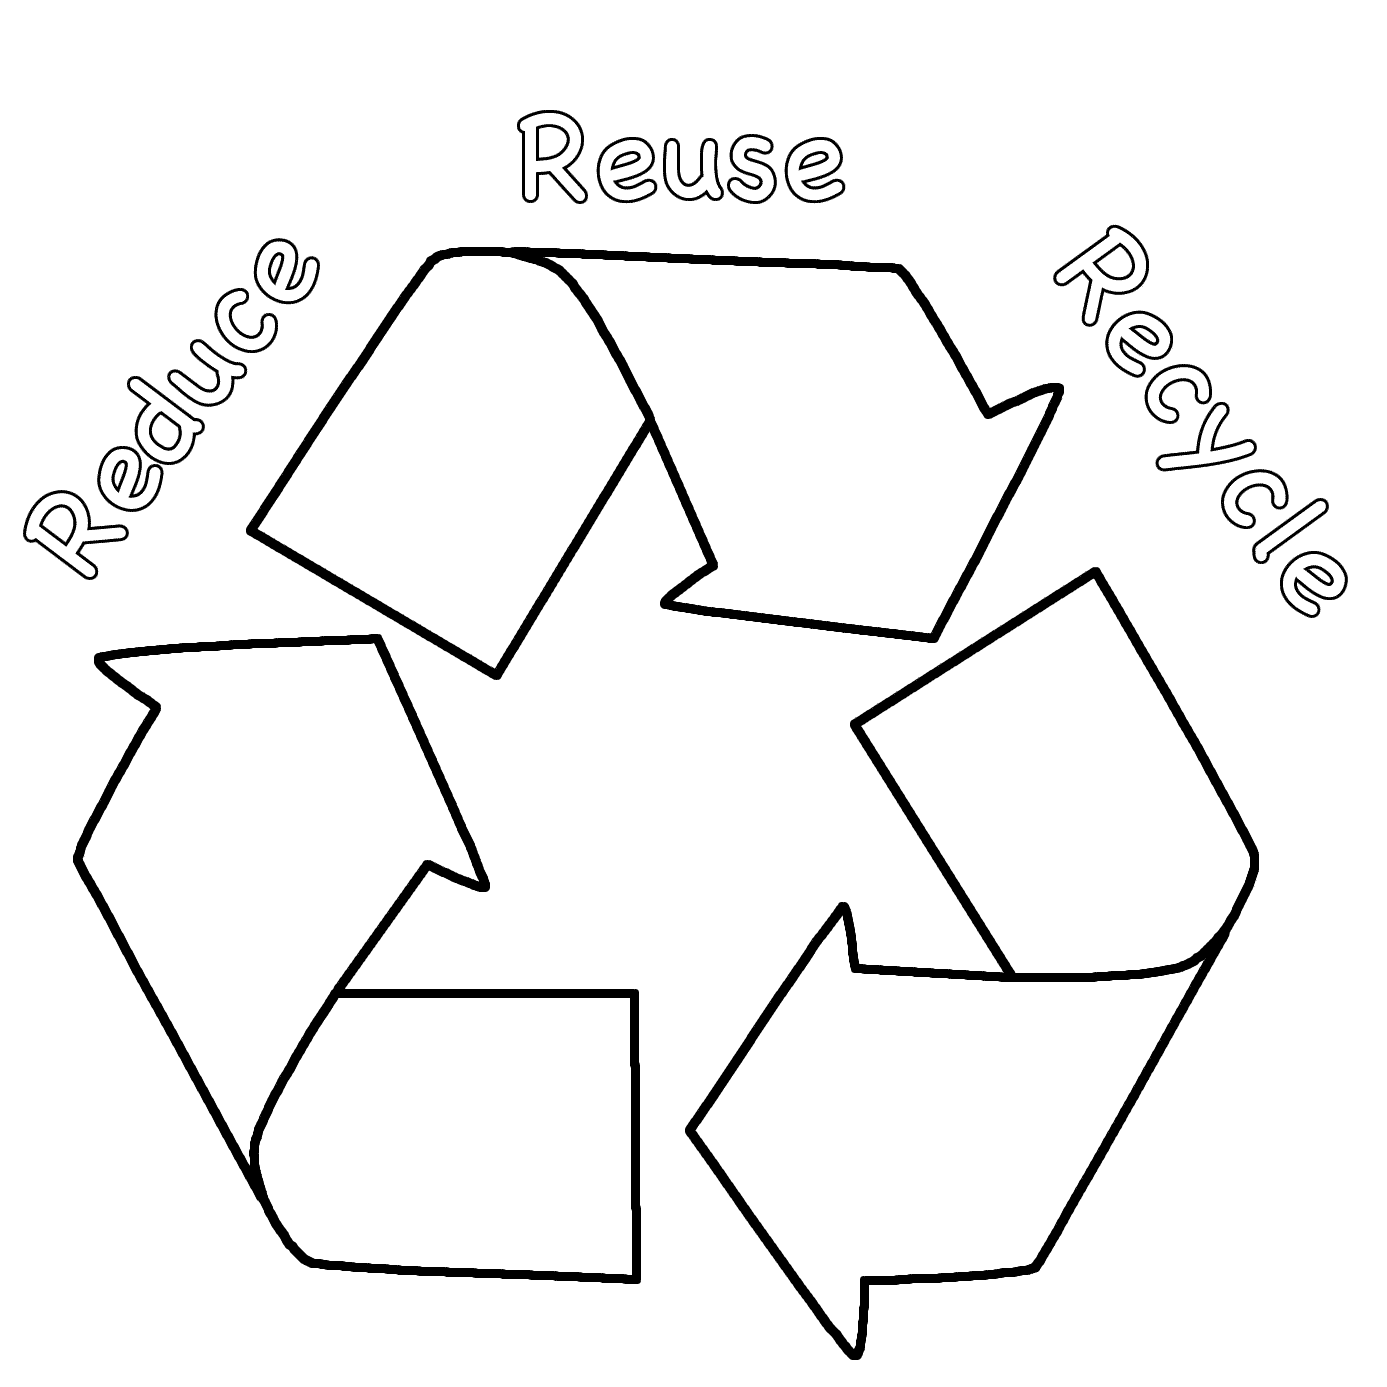 Recycling Coloring Pages For Kids